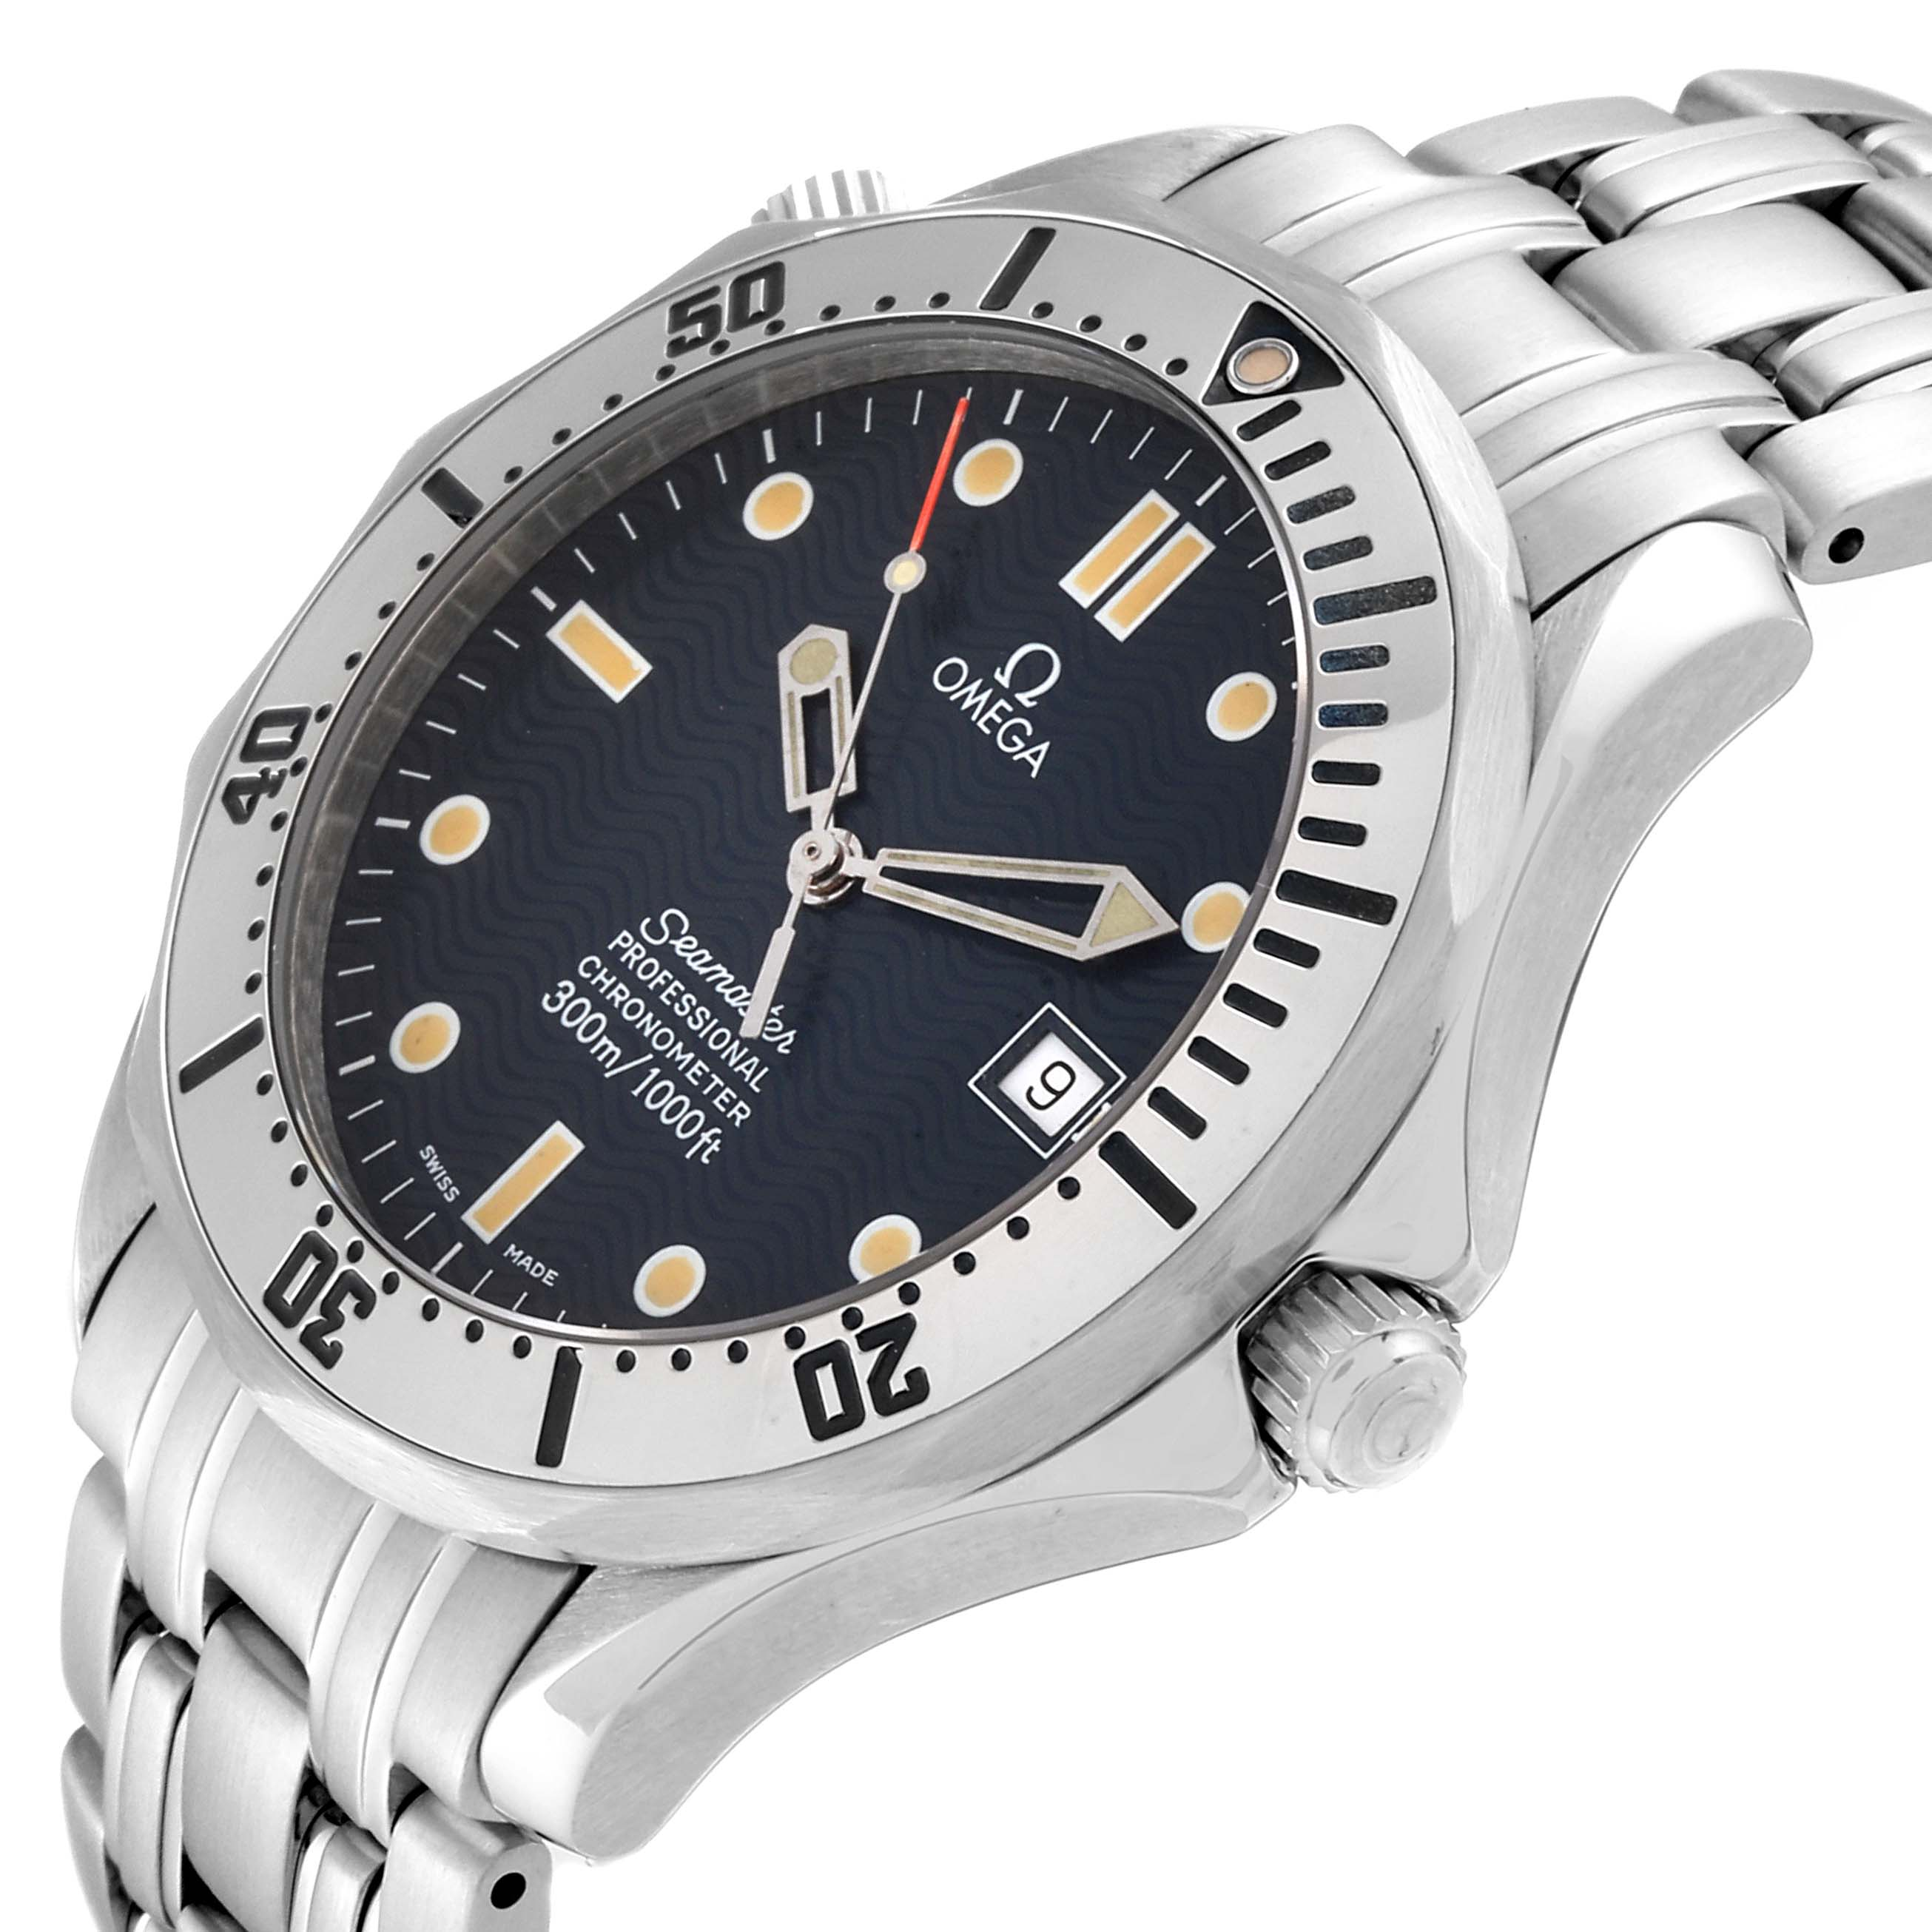 Omega Seamaster Blue Wave Decor Dial Steel 300m Watch 2532.80.00 SwissWatchExpo